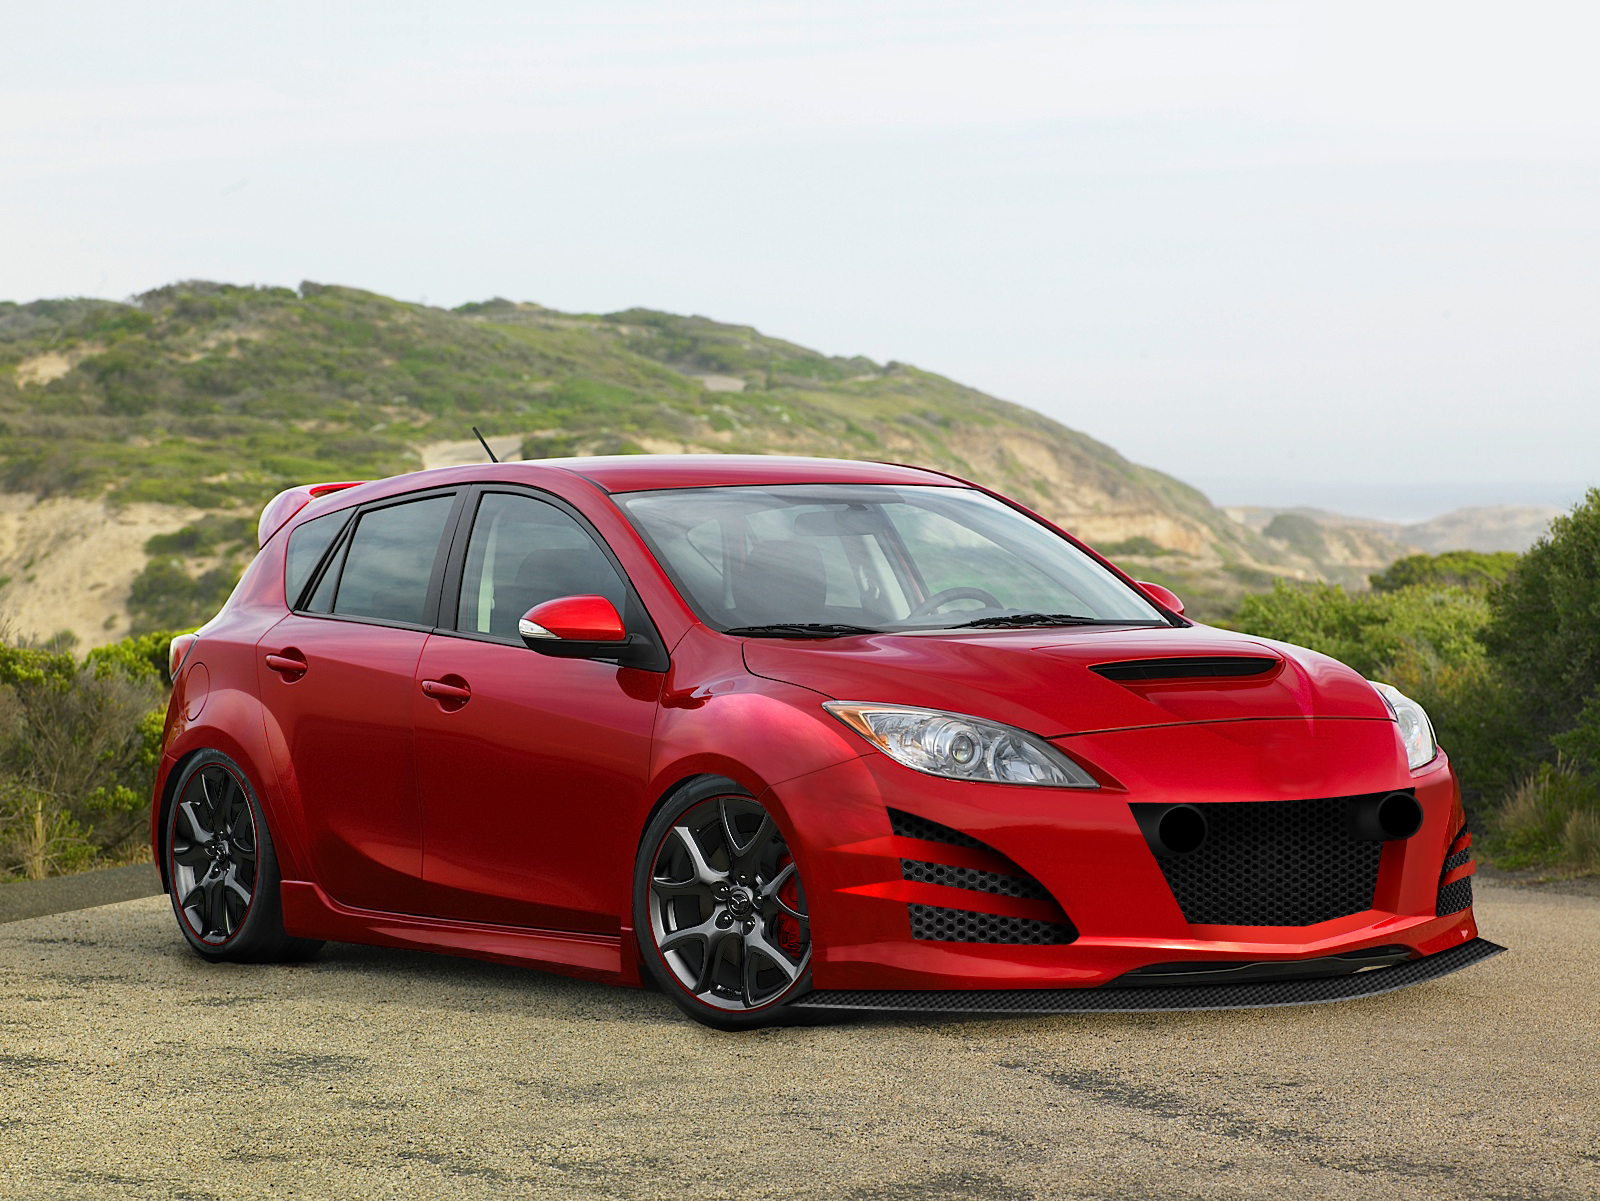 Mazda 3 Hatchback With Rims >> Mazdaspeed 3 Hatchback by OCraque on DeviantArt